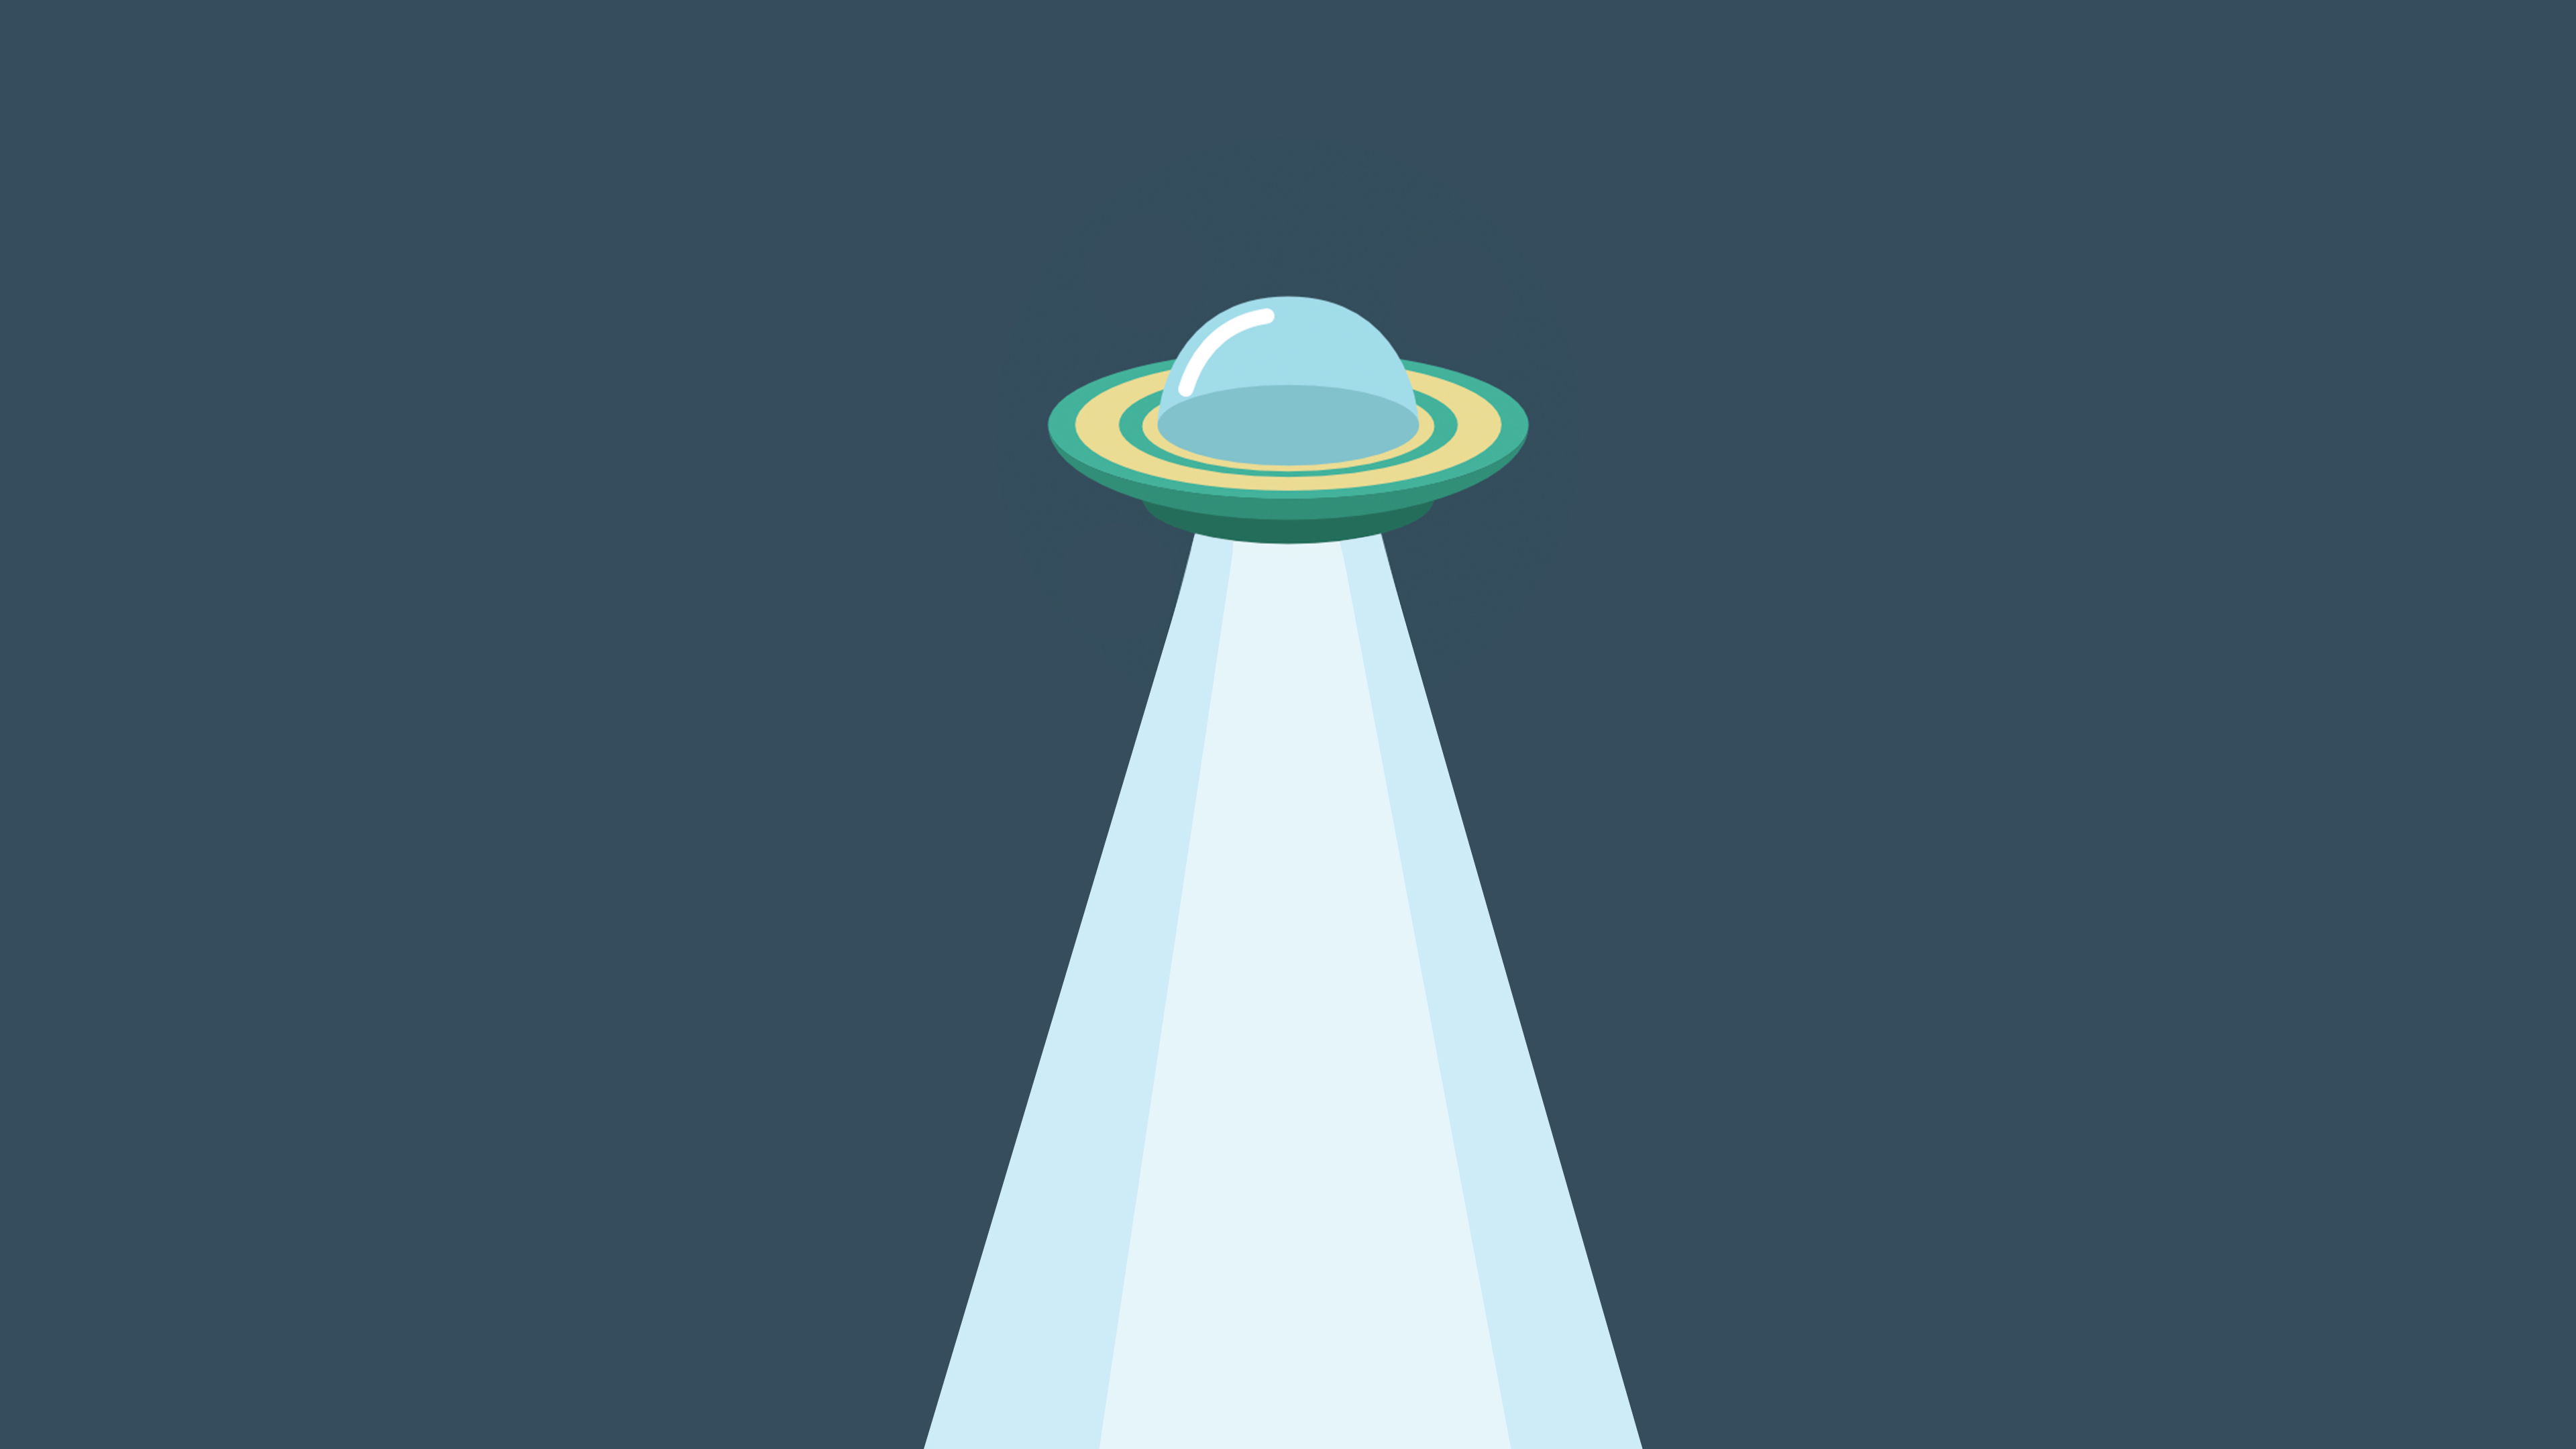 Unidentified Flying Object MNML Wallpapers 3840x2160